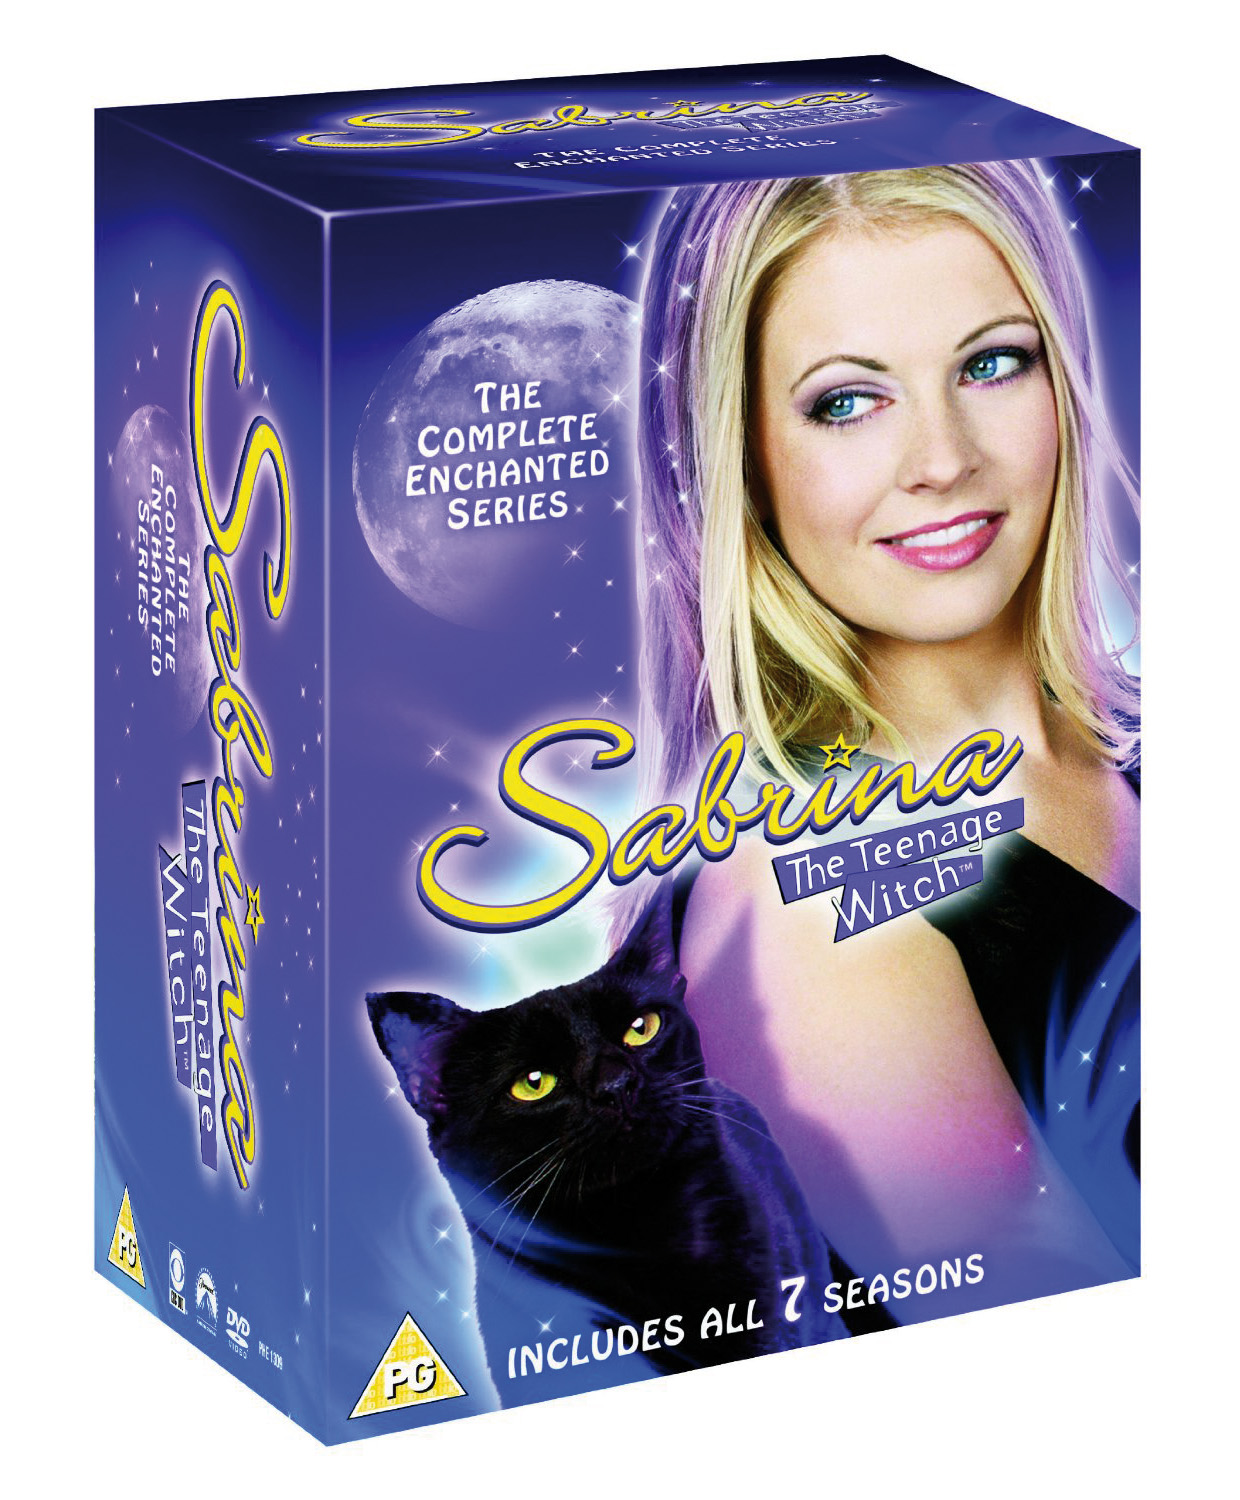 sabrina_teenage_witch_dvd_complete_series_uk_dvdbash